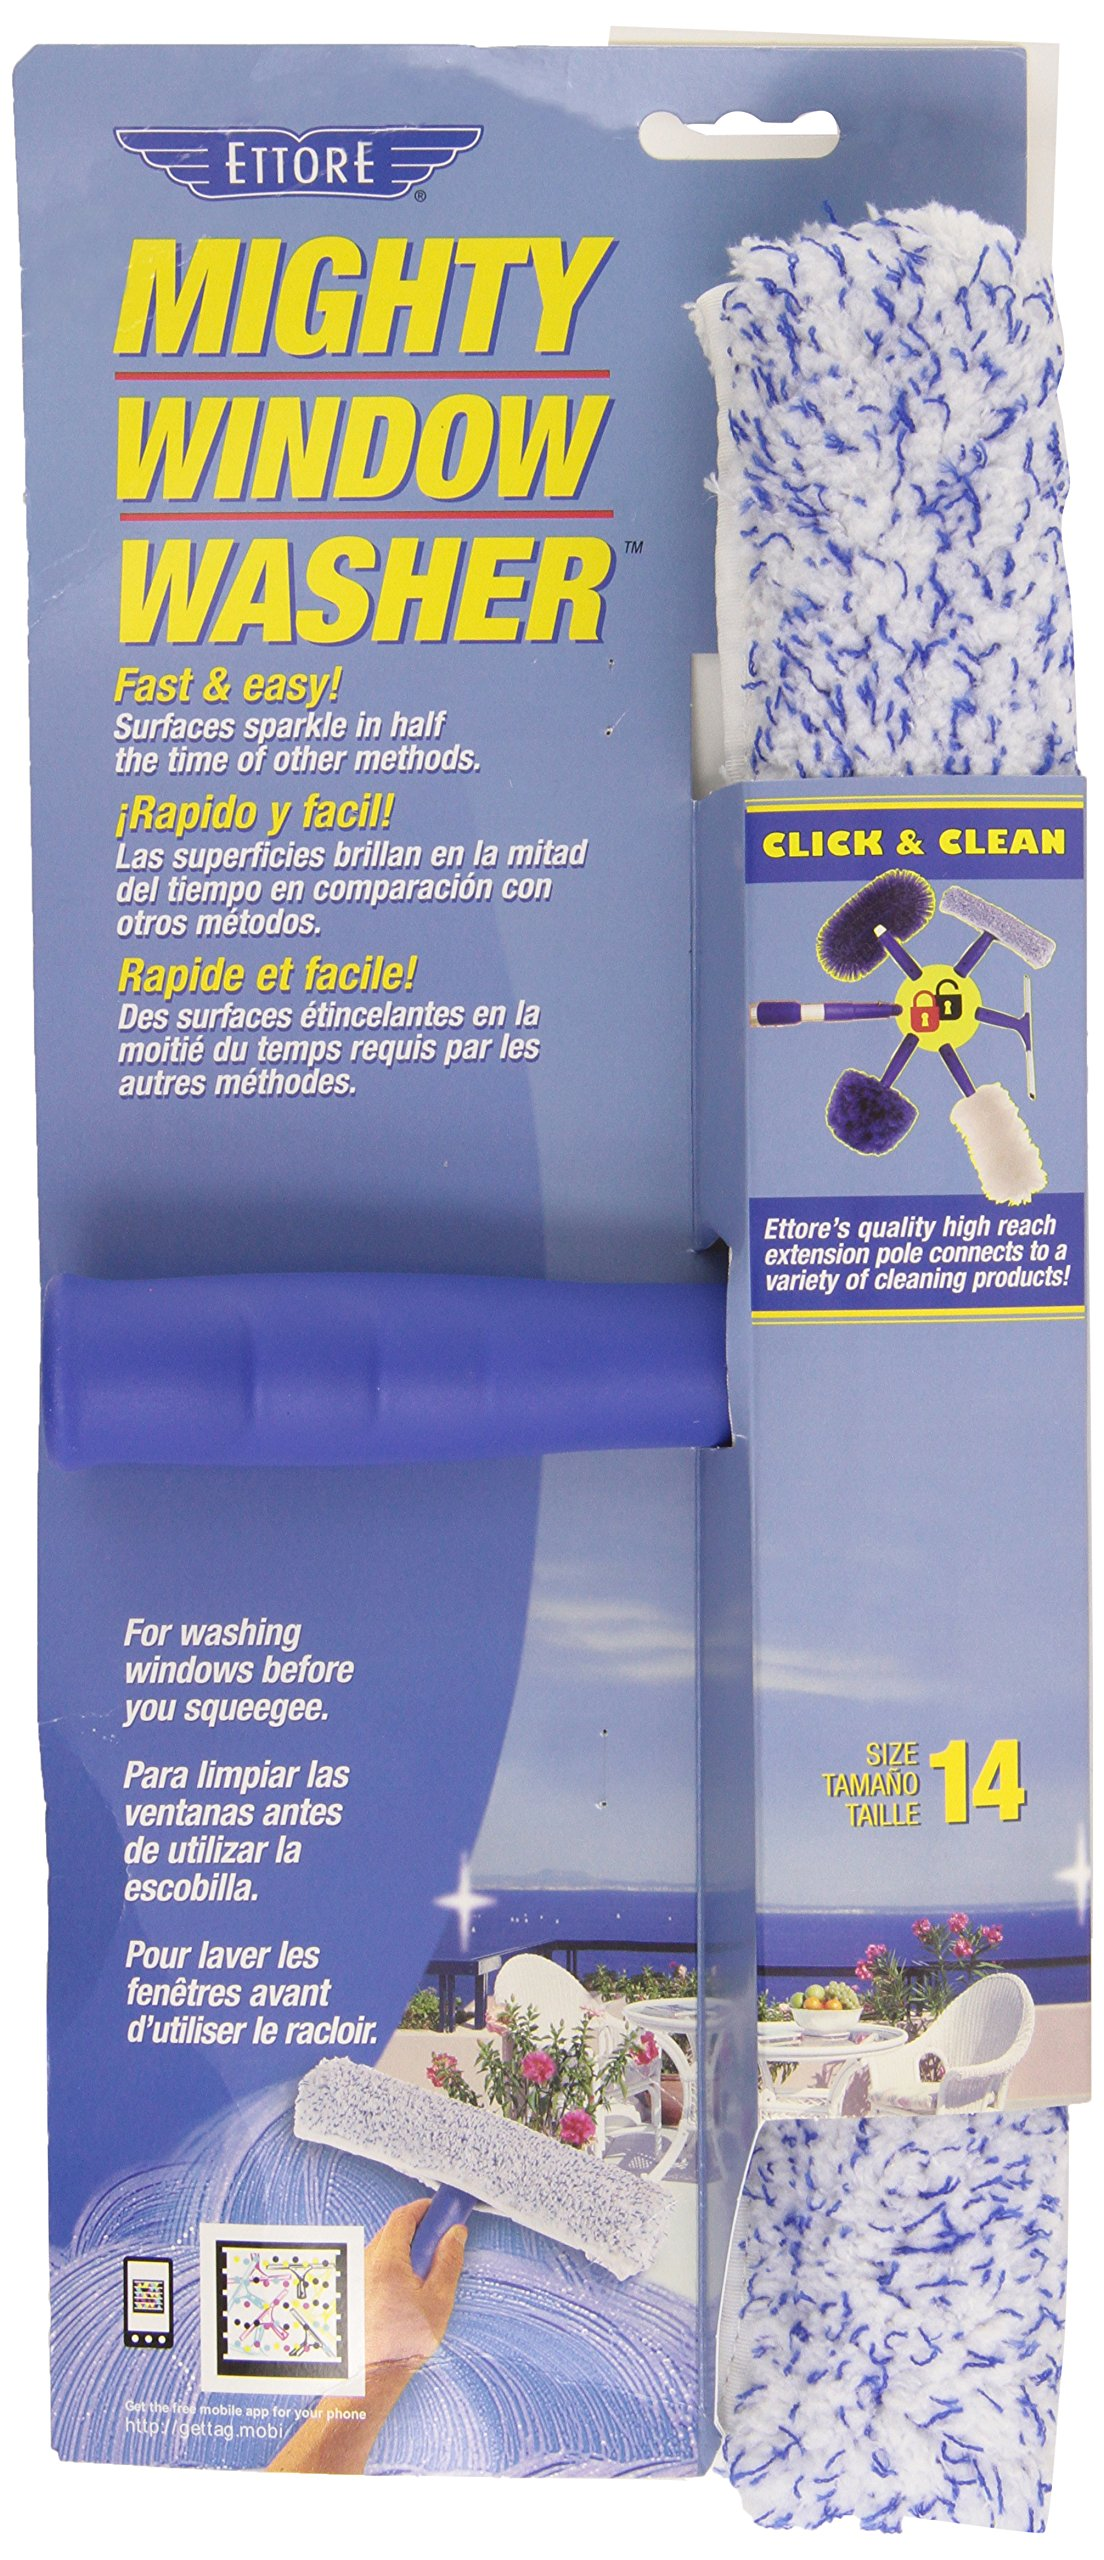 Ettore 50014 Mighty Window Washer, 14-Inch by Ettore (Image #2)